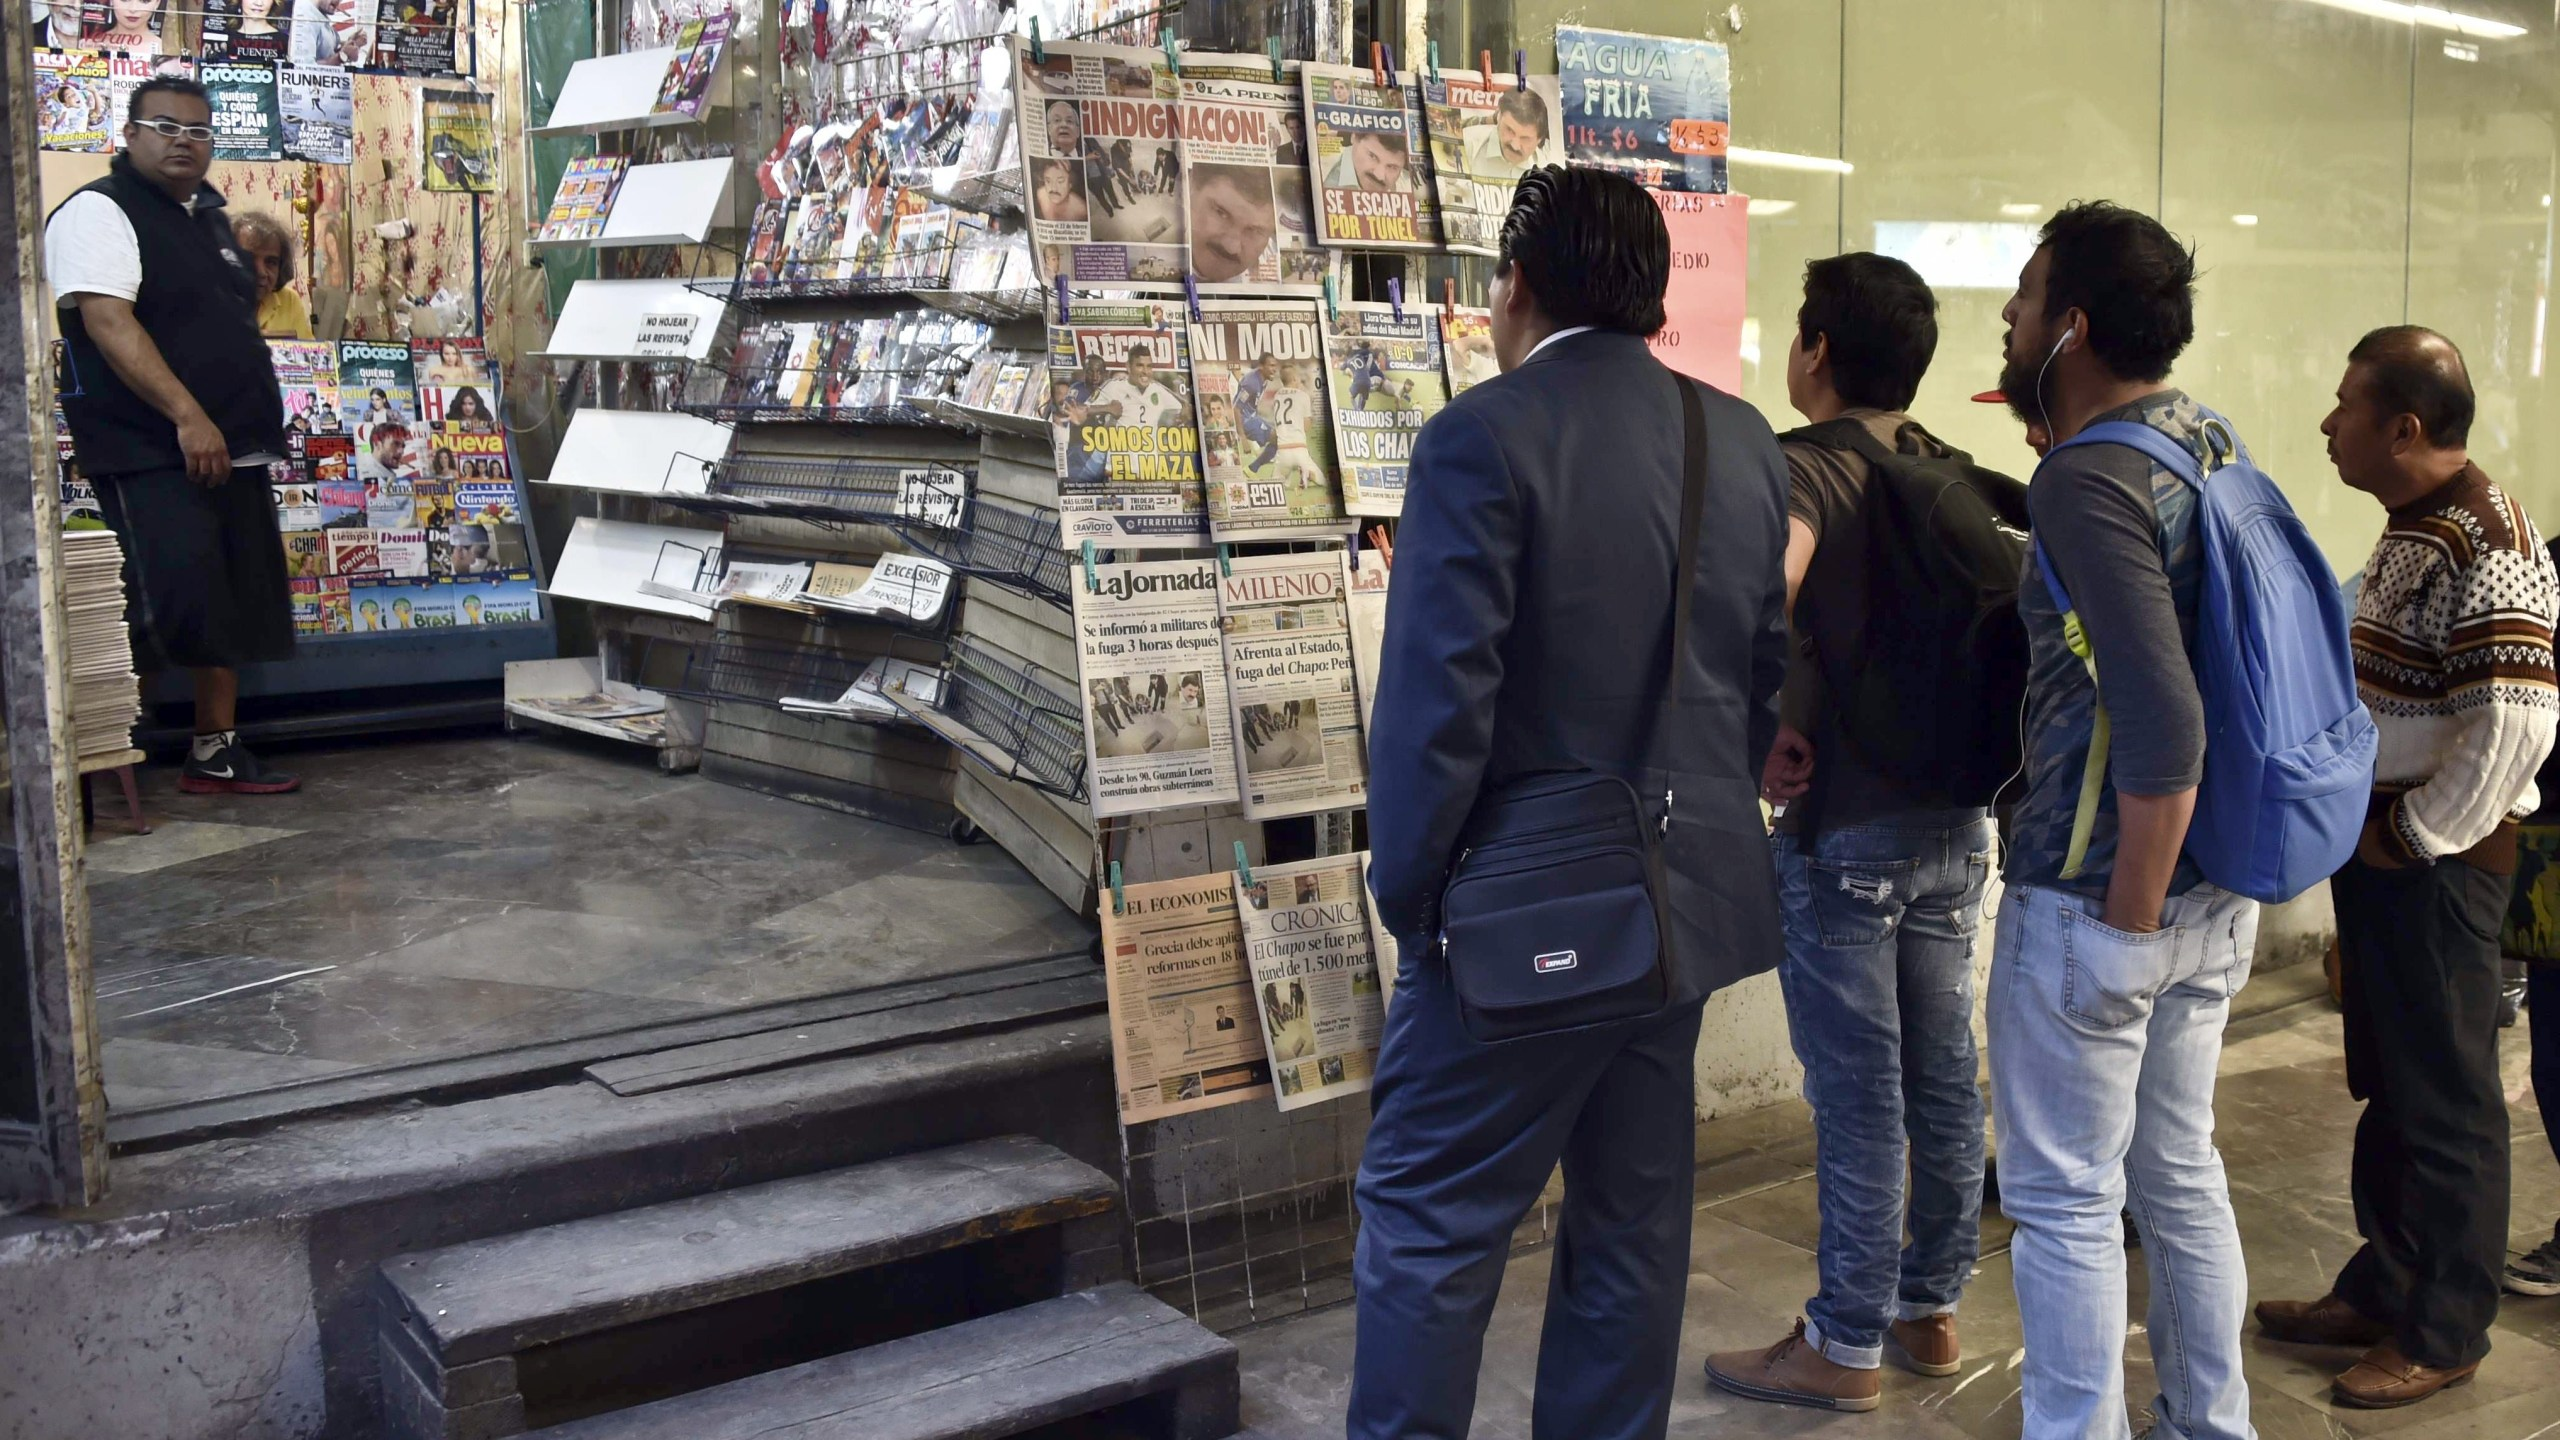 People look at newspapers at a newsstand in Mexico City on July 13, 2015. (Credit: YURI CORTEZ/AFP/Getty Images)